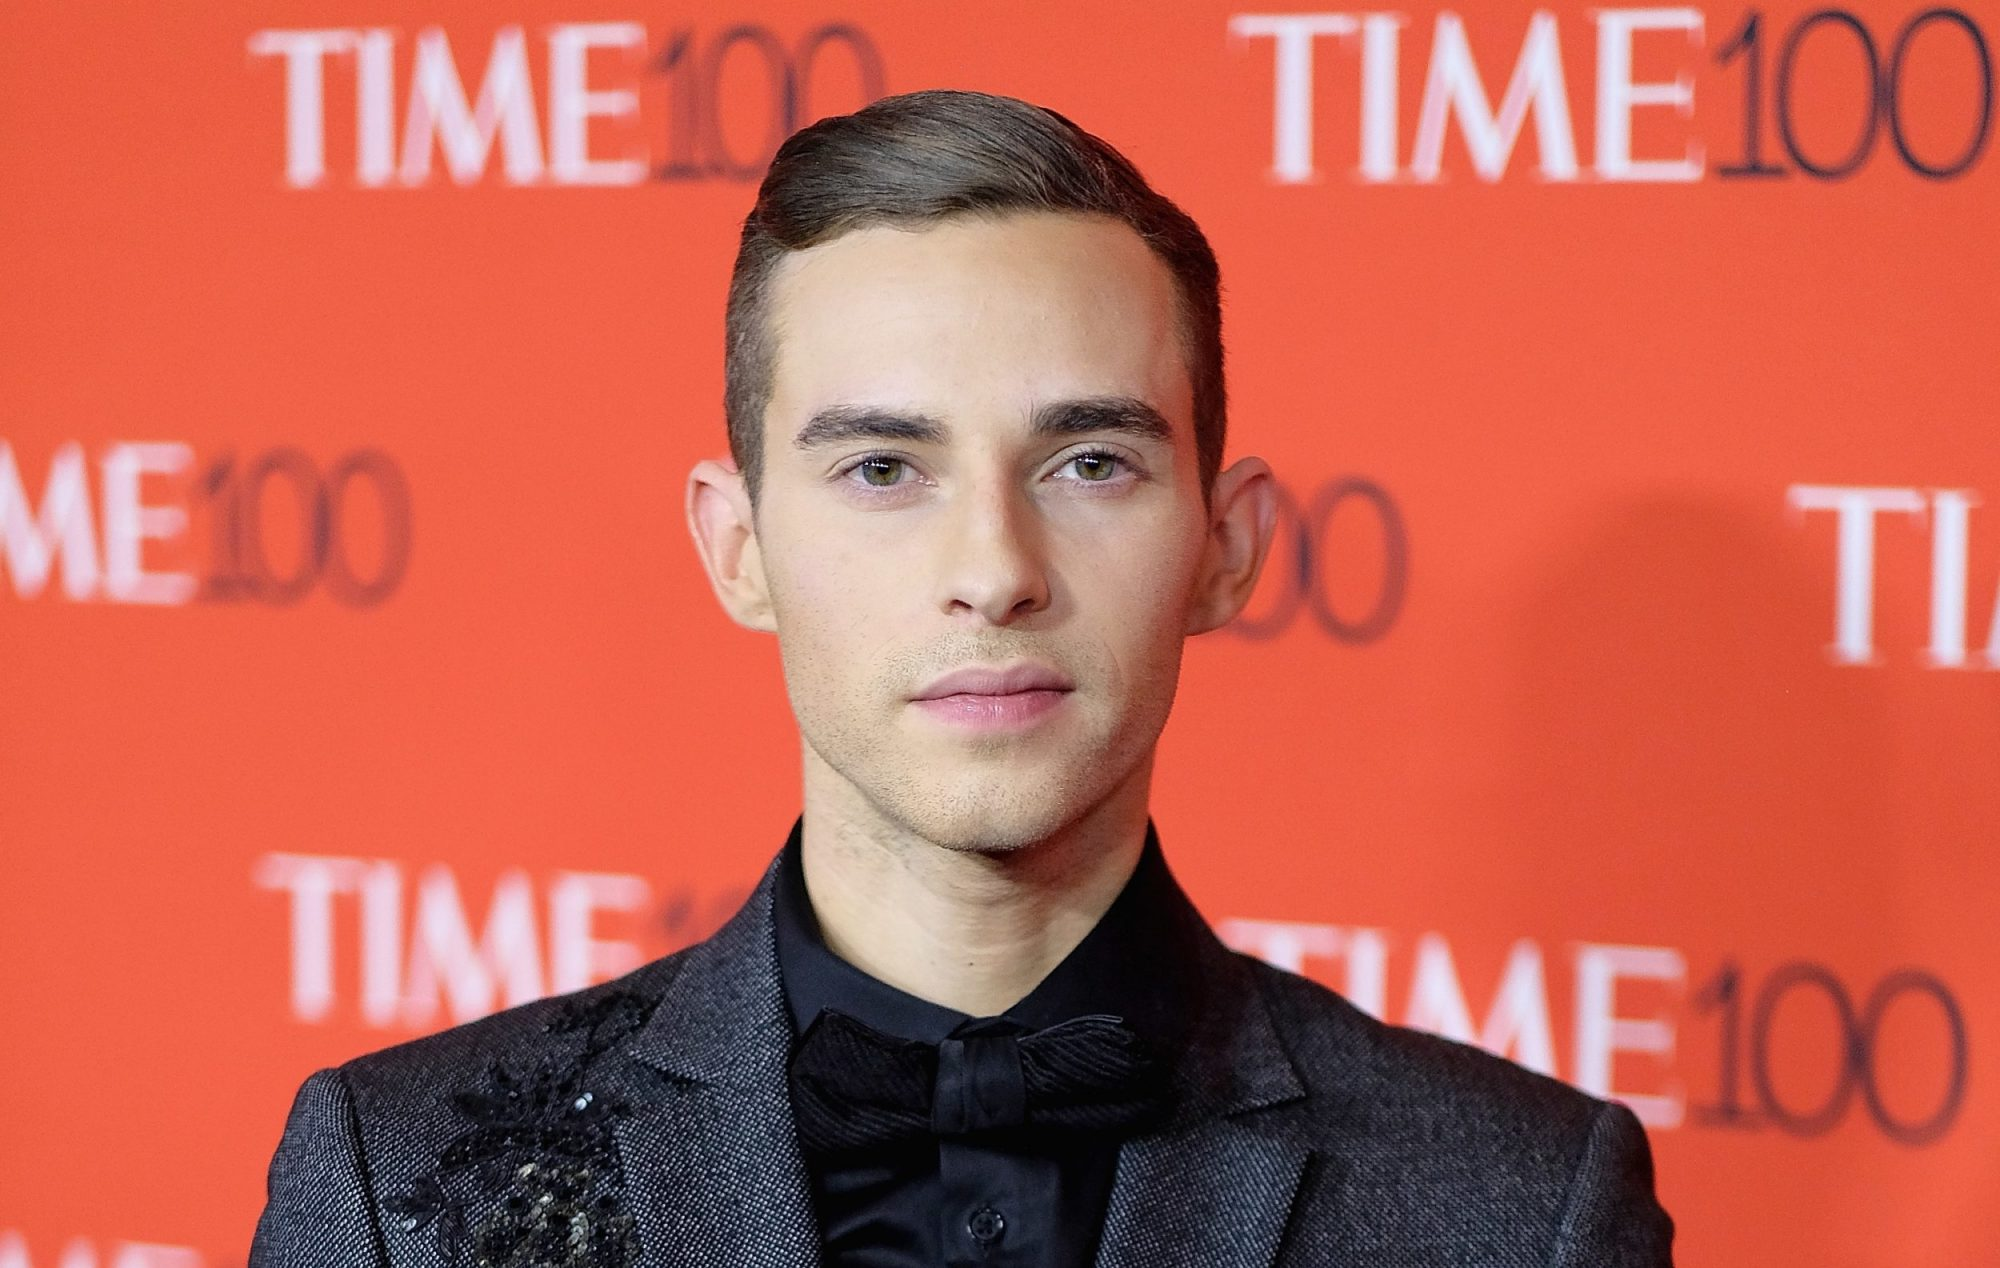 Photo of Adam Rippon at the 2018 Time 100 Gala at Lincoln Center